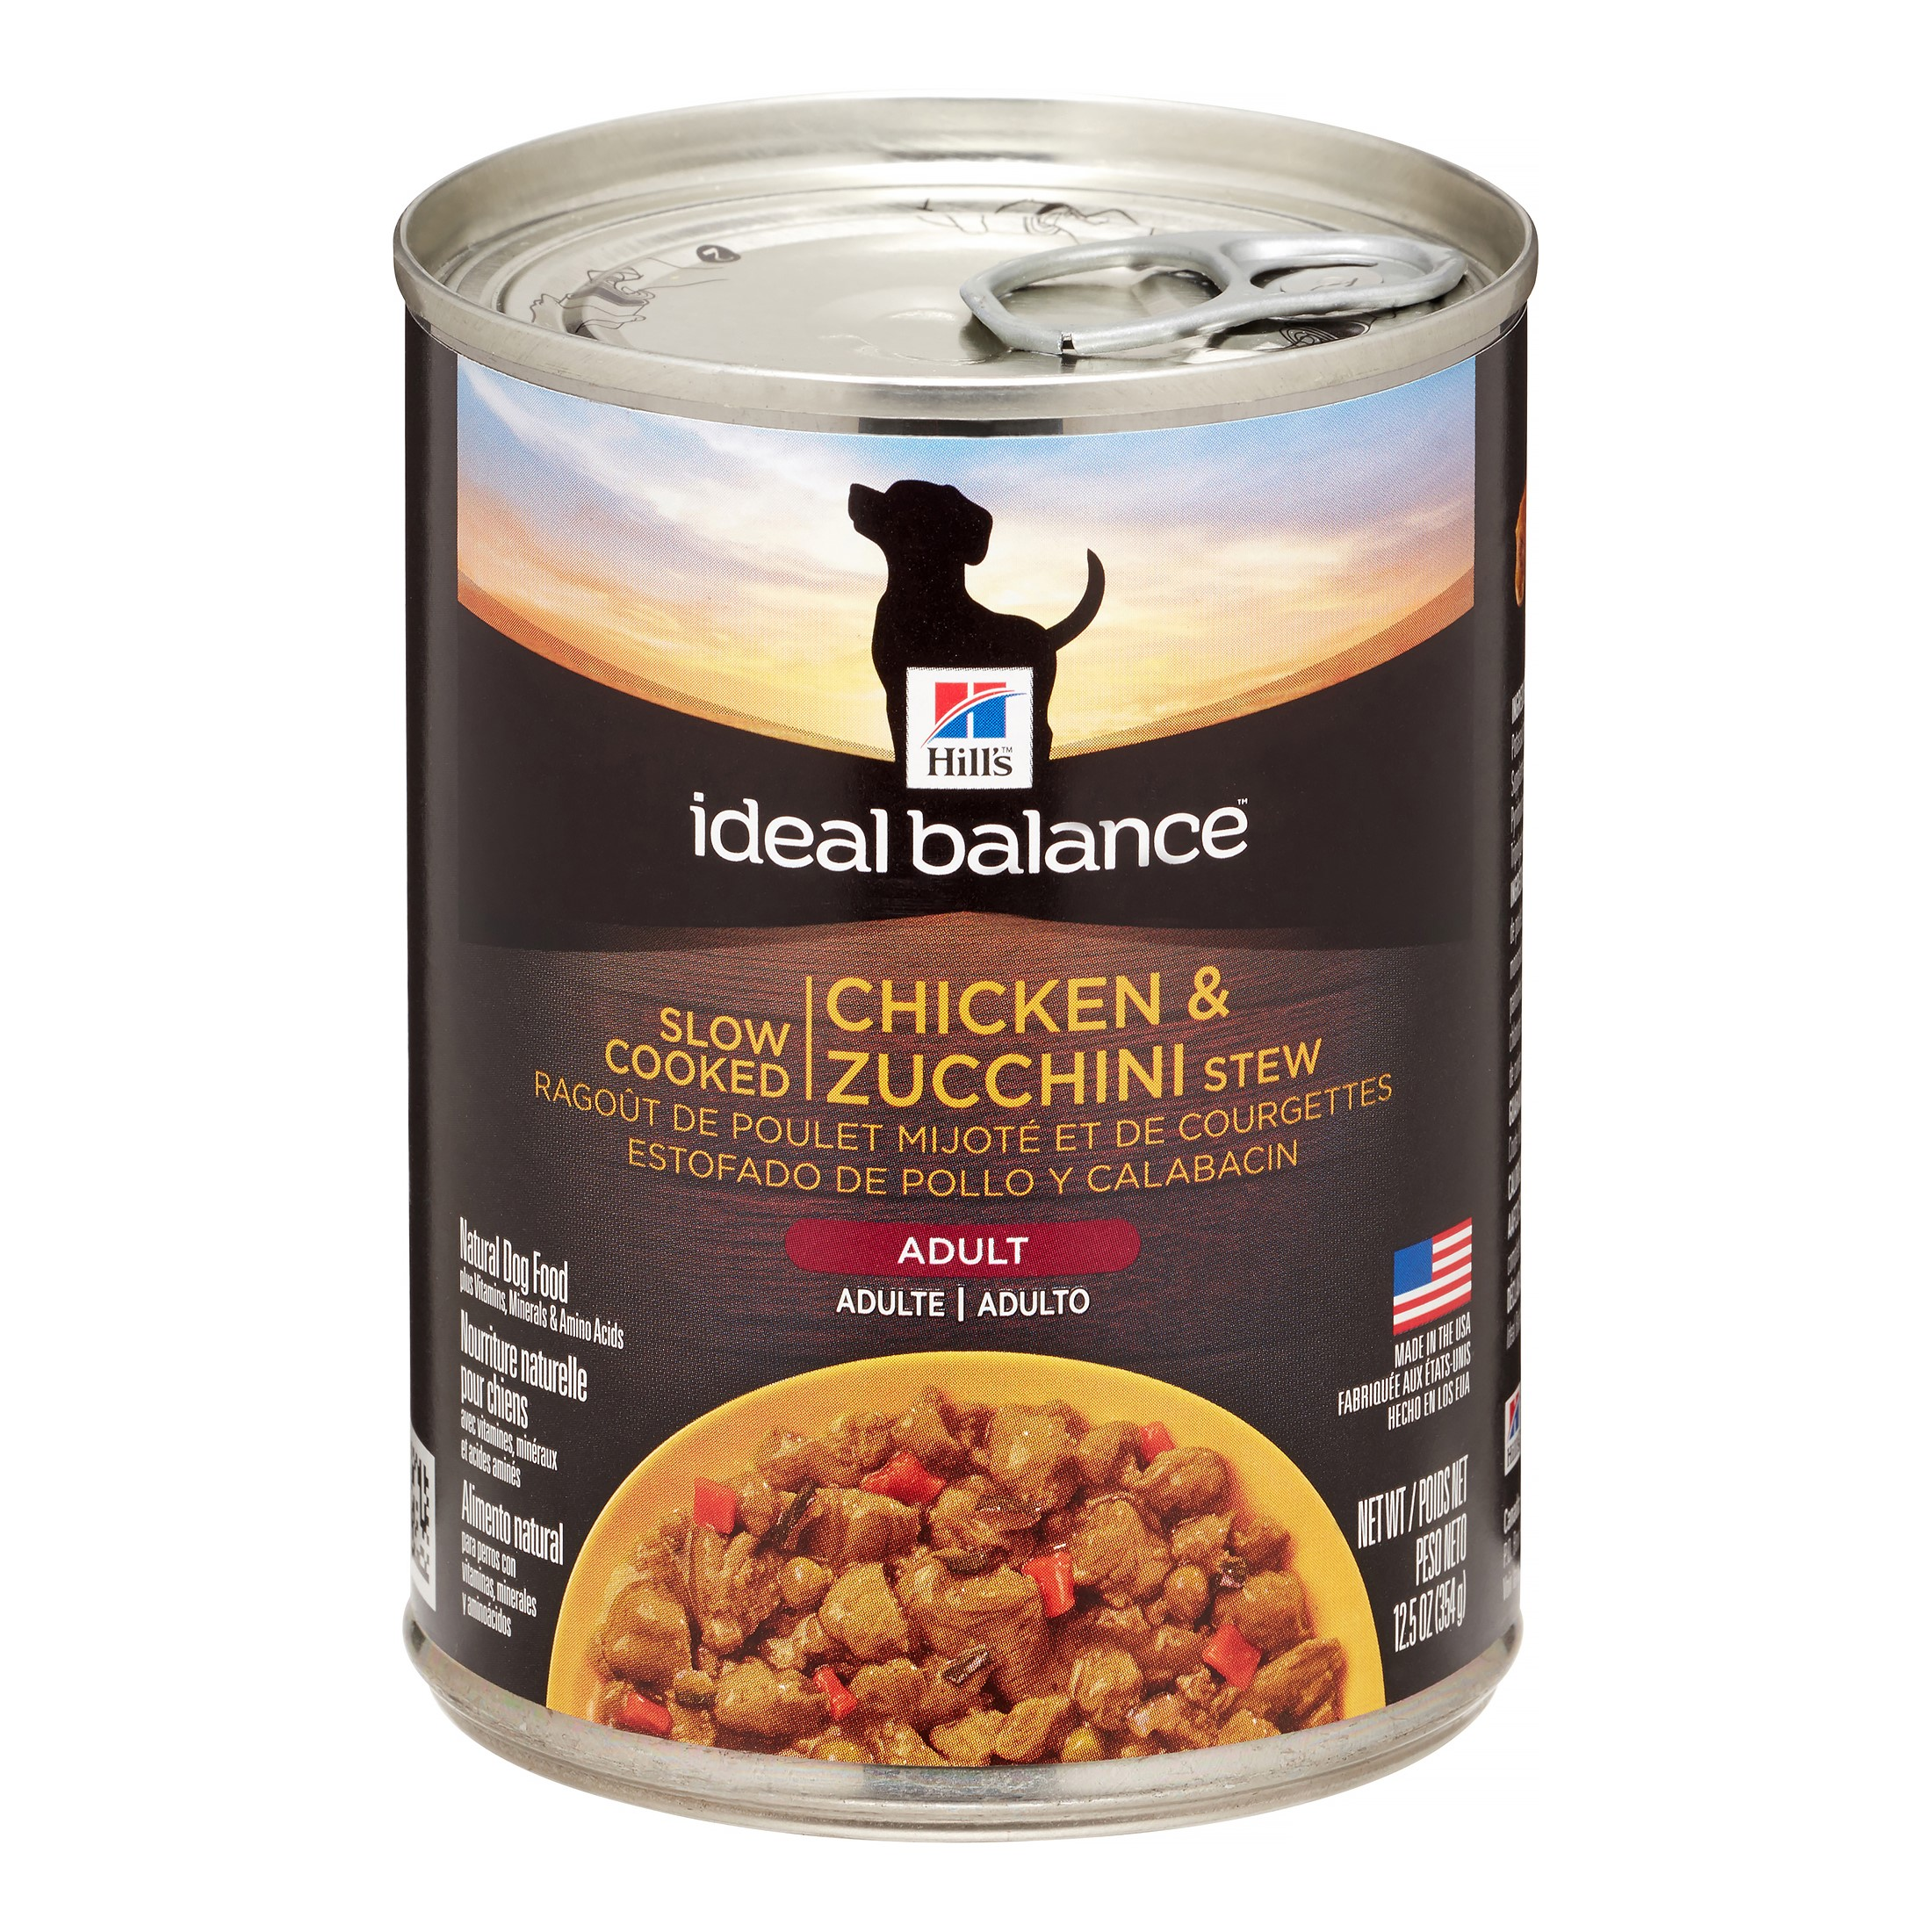 Hill's Ideal Balance (Spend $20, Get $5) Adult Slow Cooked Chicken & Zucchini Stew Wet Dog Food, 12.5 oz, 12-pack (See description for rebate details)